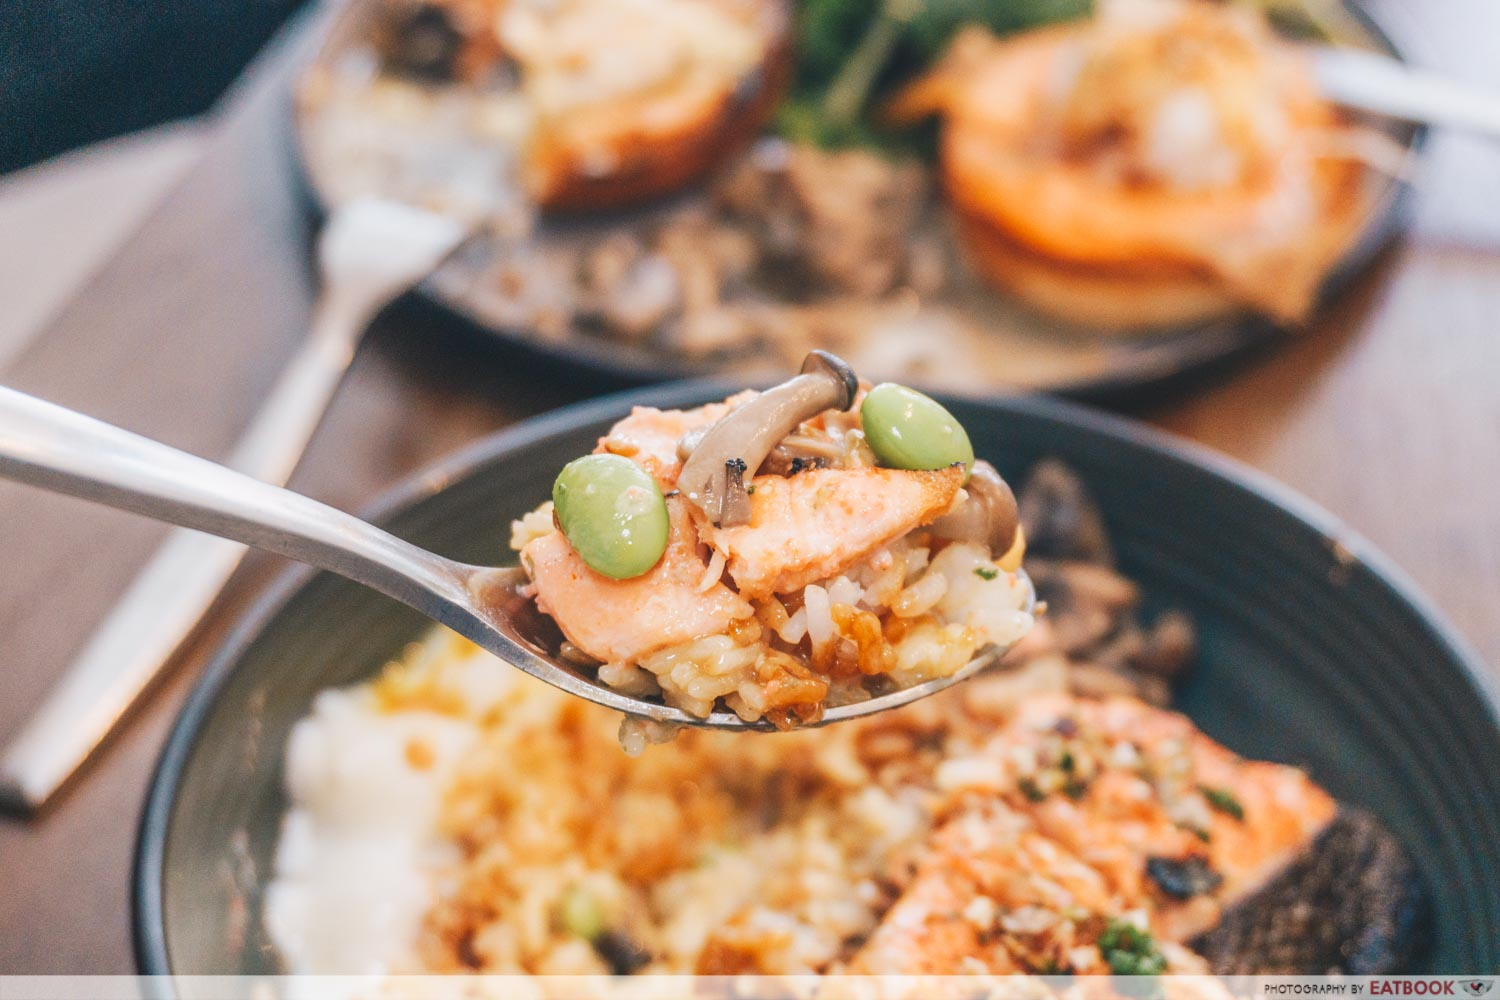 Spoonful of Torched Mentaiko Salmon Rice Bowl